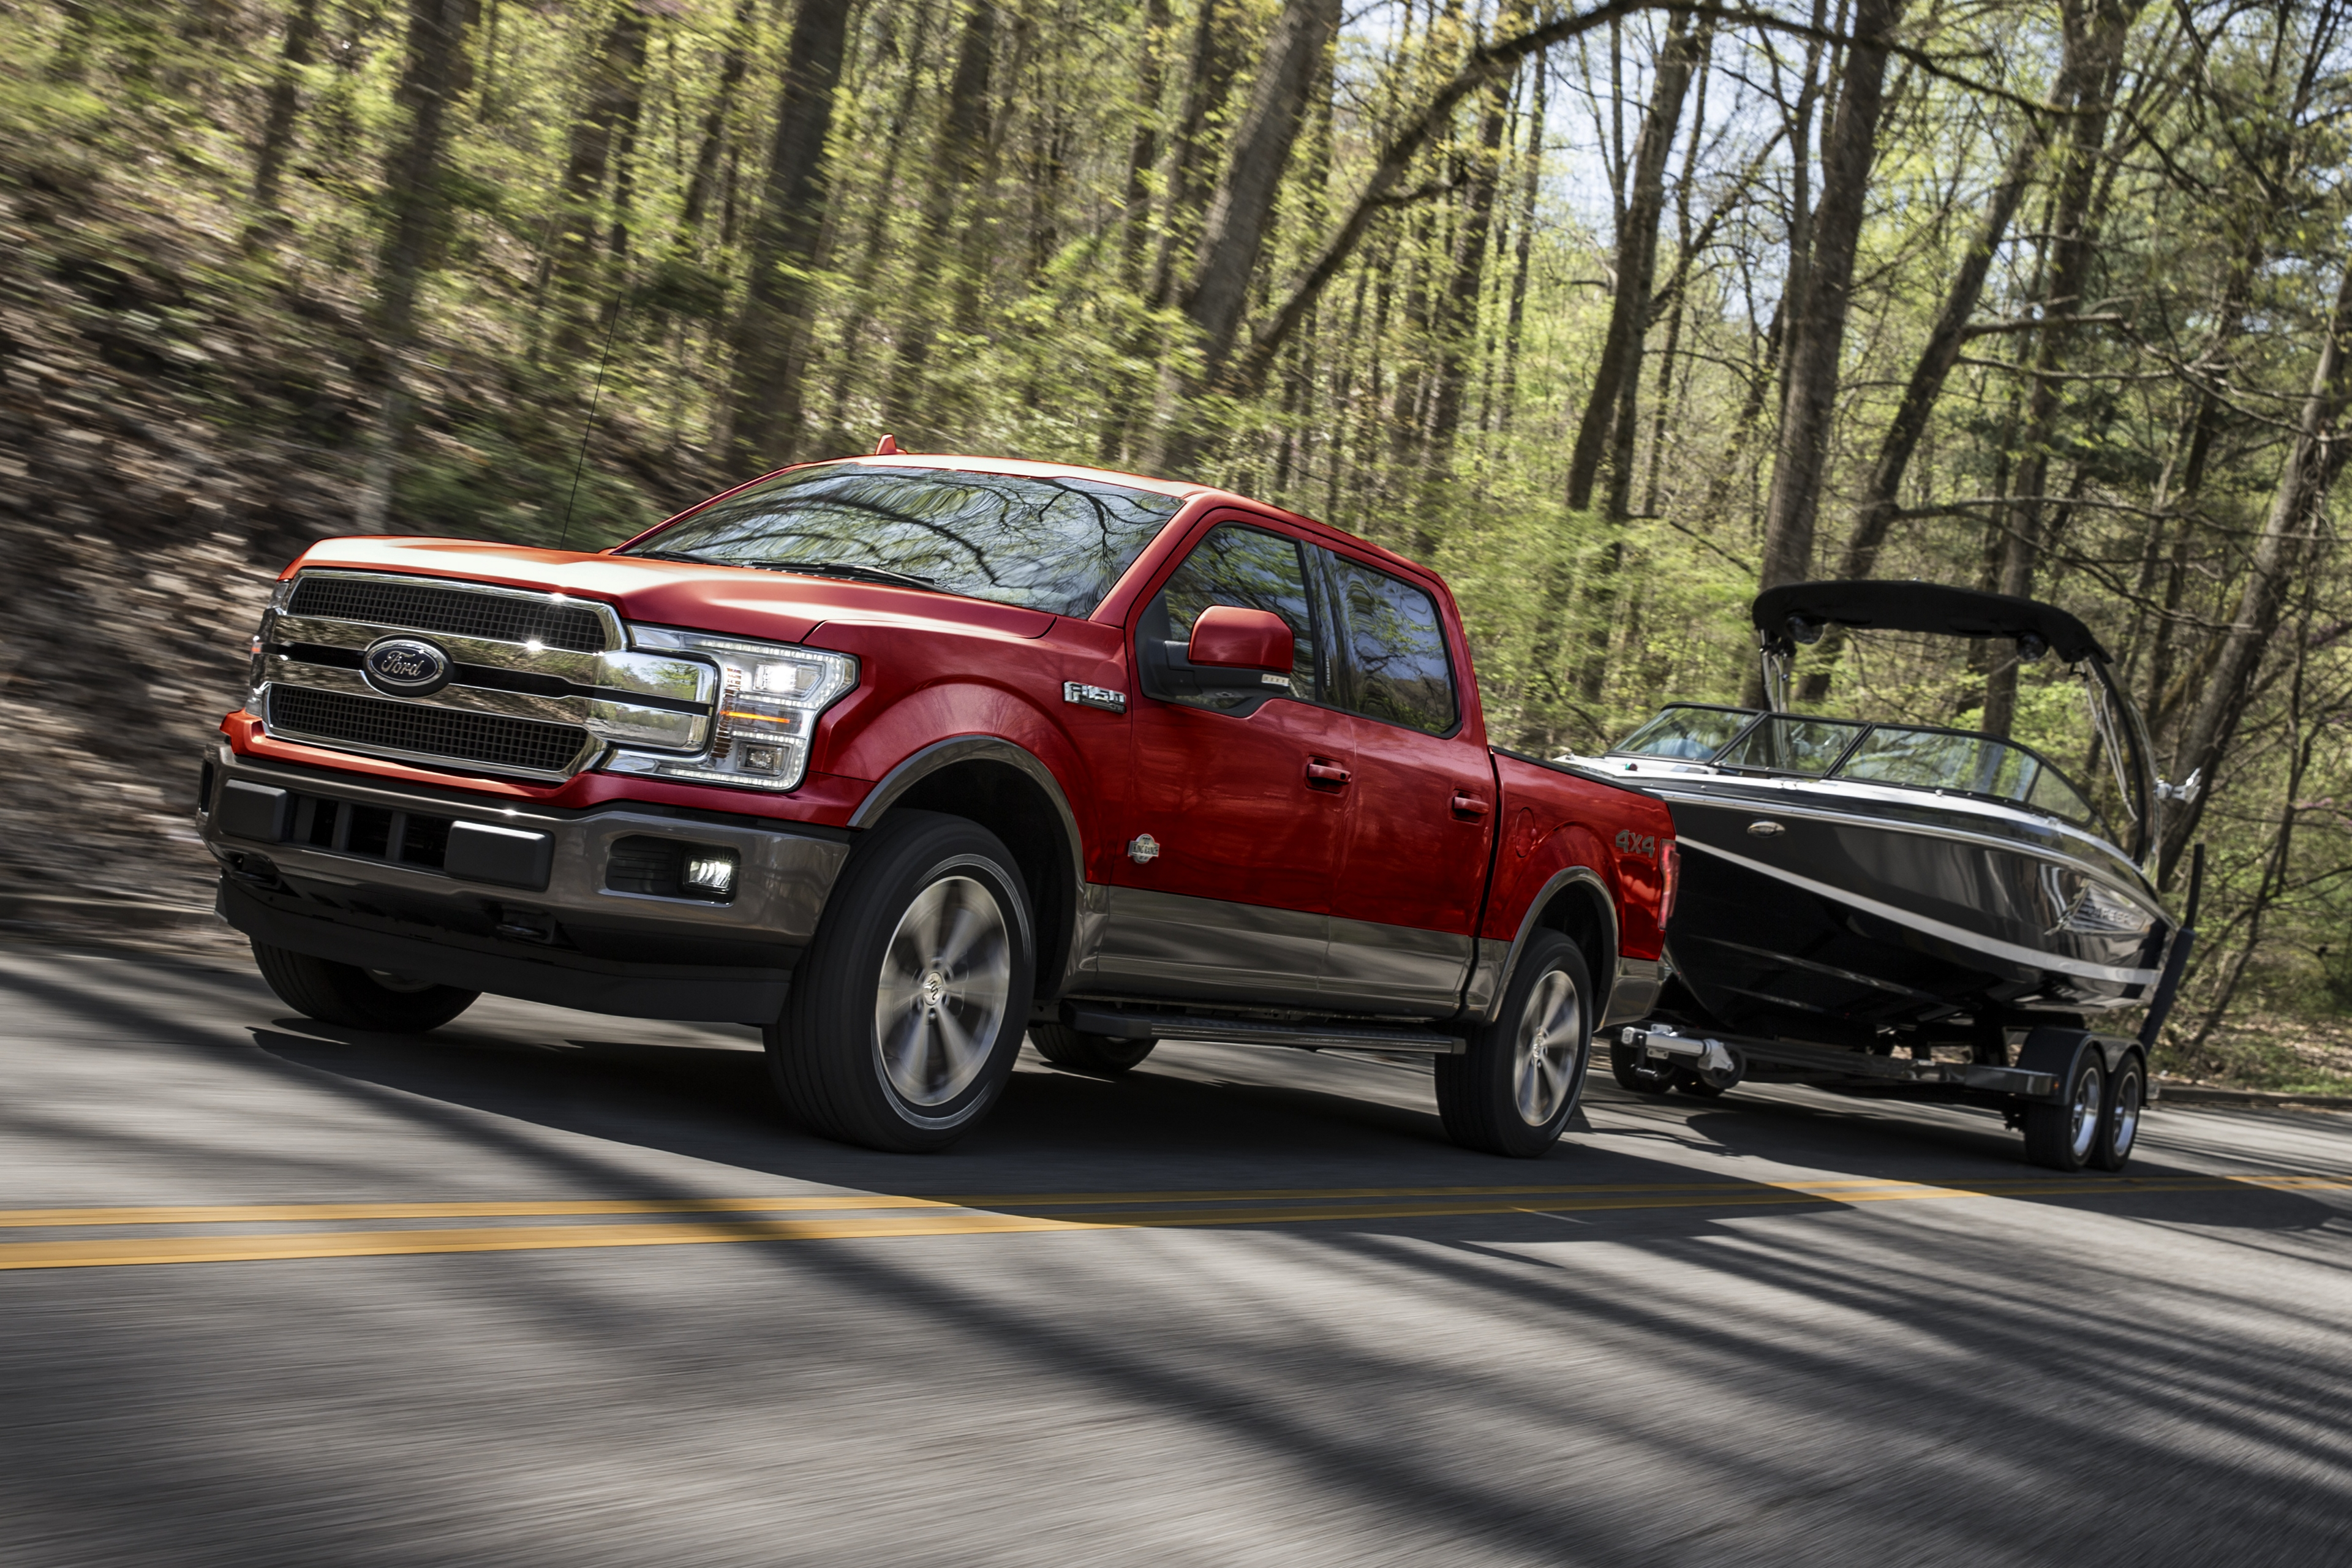 red 2020 ford f-150 towing a boat on a road in the woods